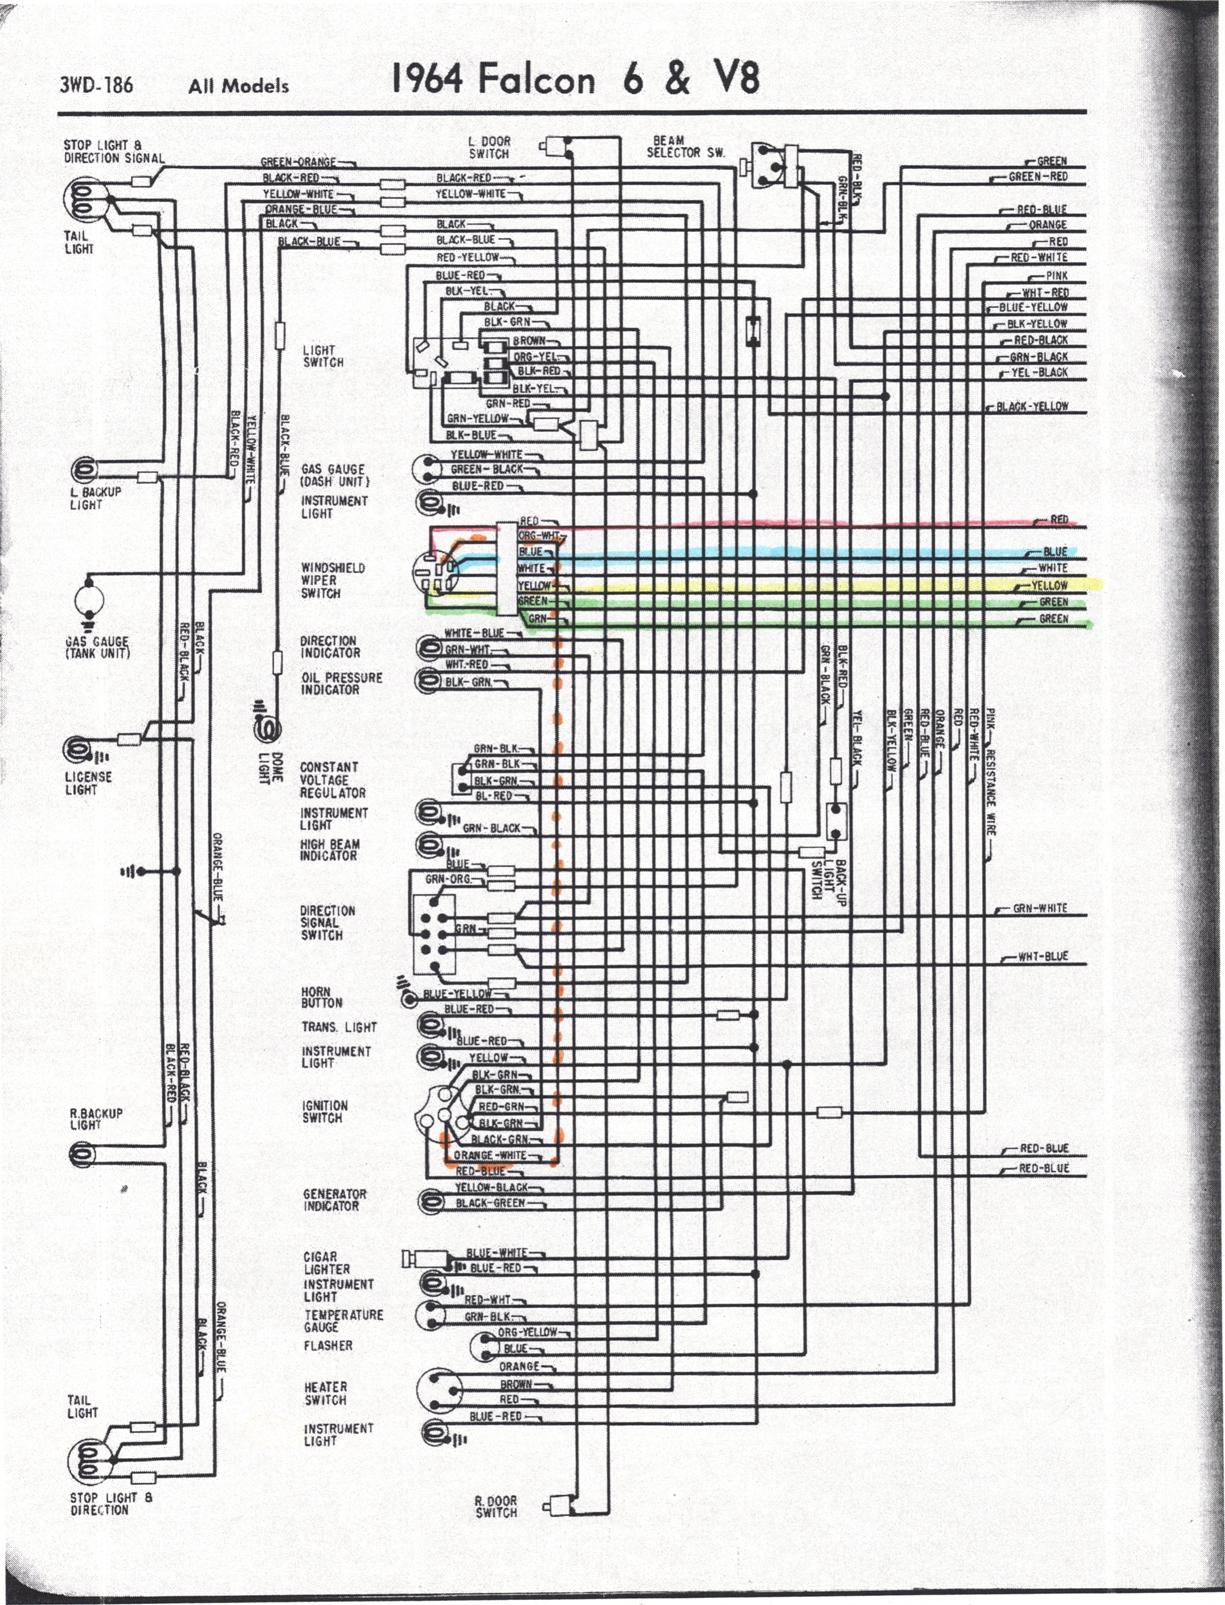 1964 Ford Falcon Wiring - Wiring Diagram M1  Falcon Wiring Diagram Starter Solenoid on